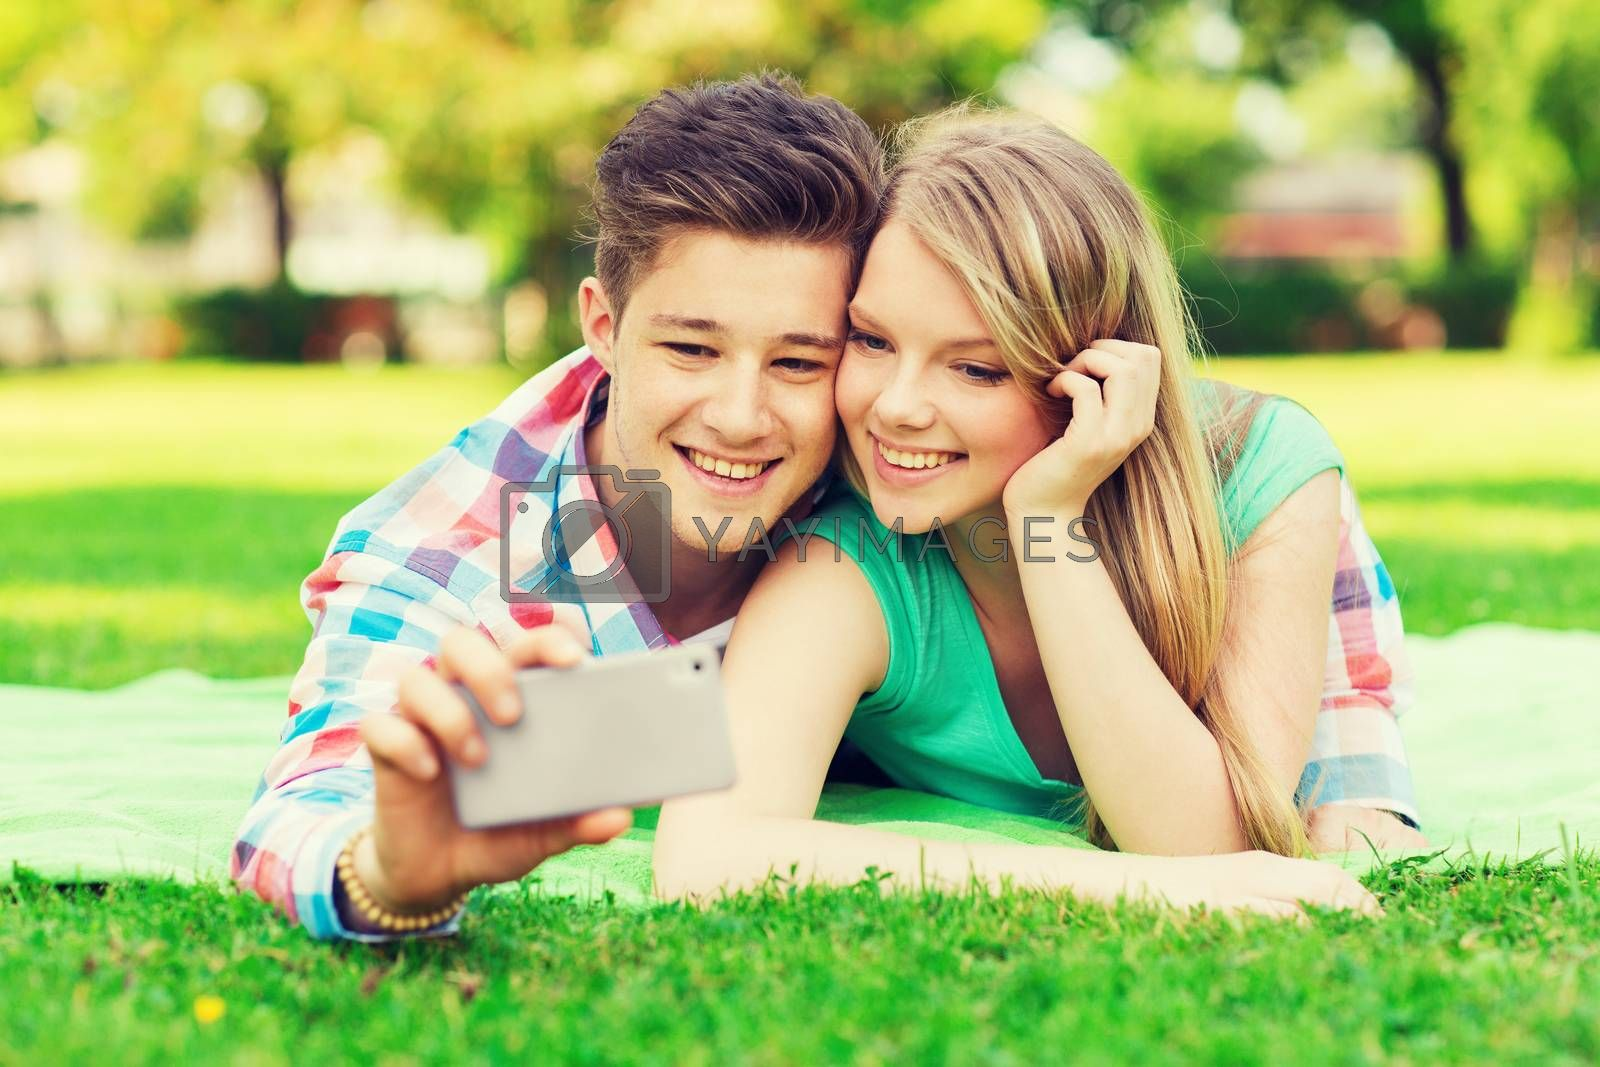 vacation, holidays, technology and friendship concept - smiling couple lying on blanket and making selfie with smartphone in park